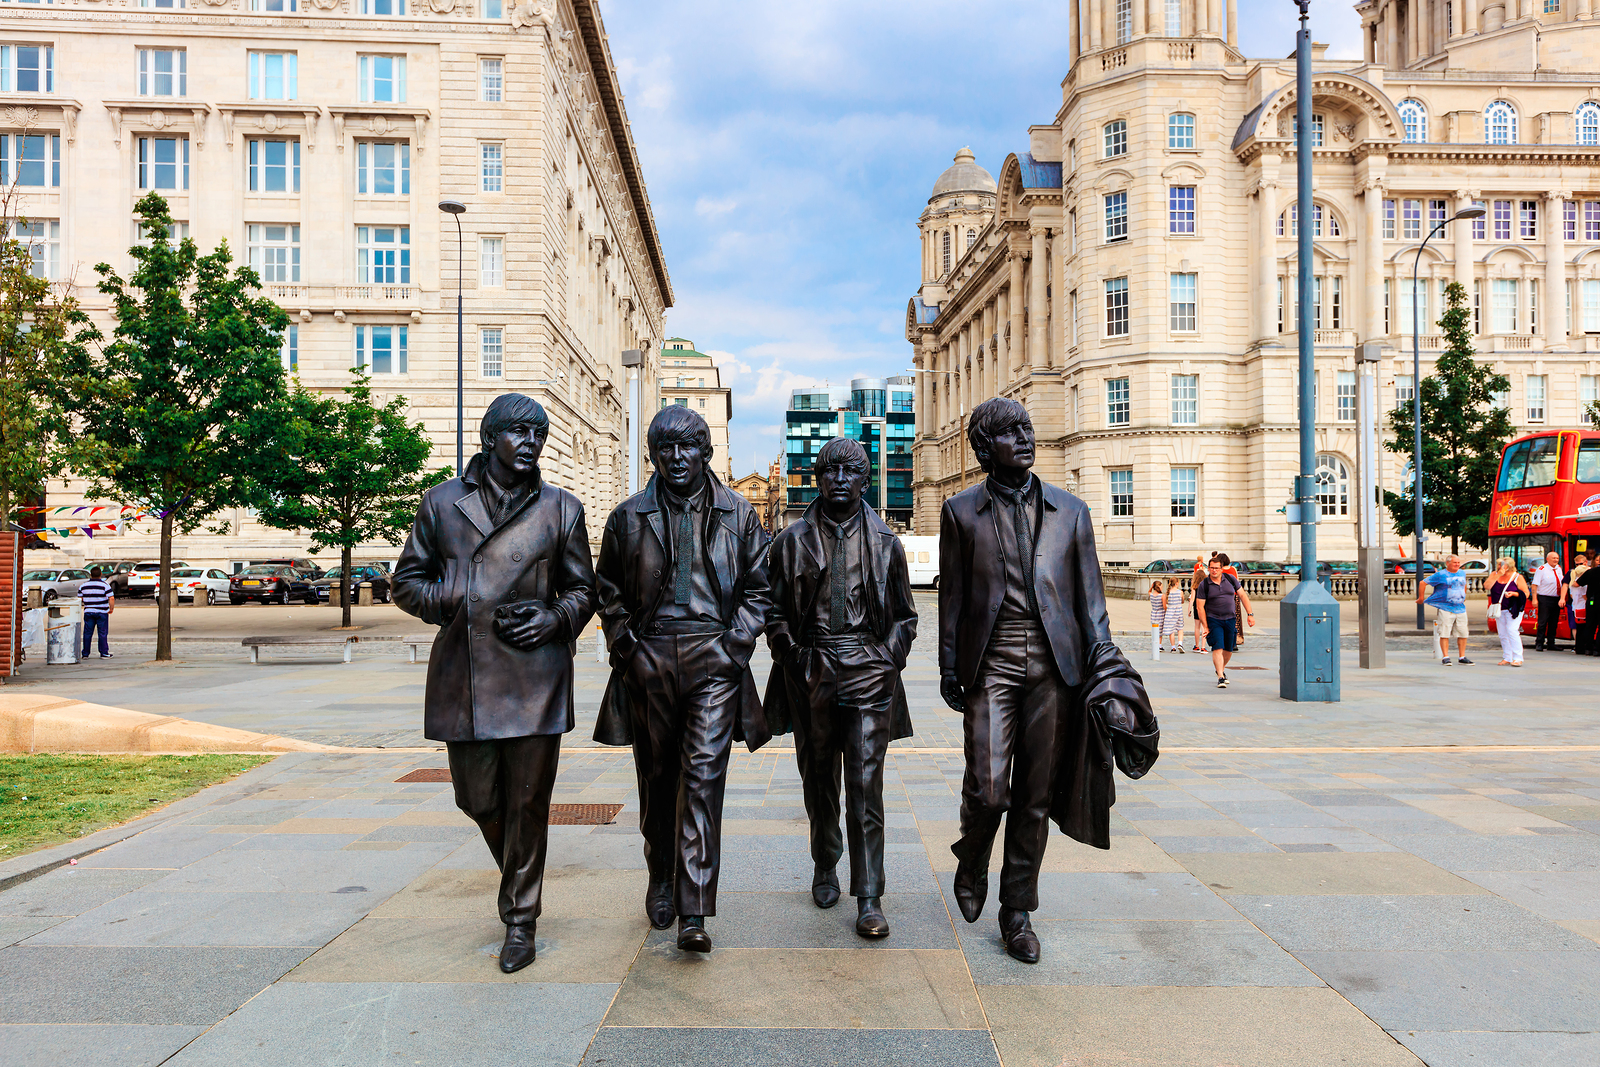 Top Sites To Enjoy In Liverpool This Mother's Day